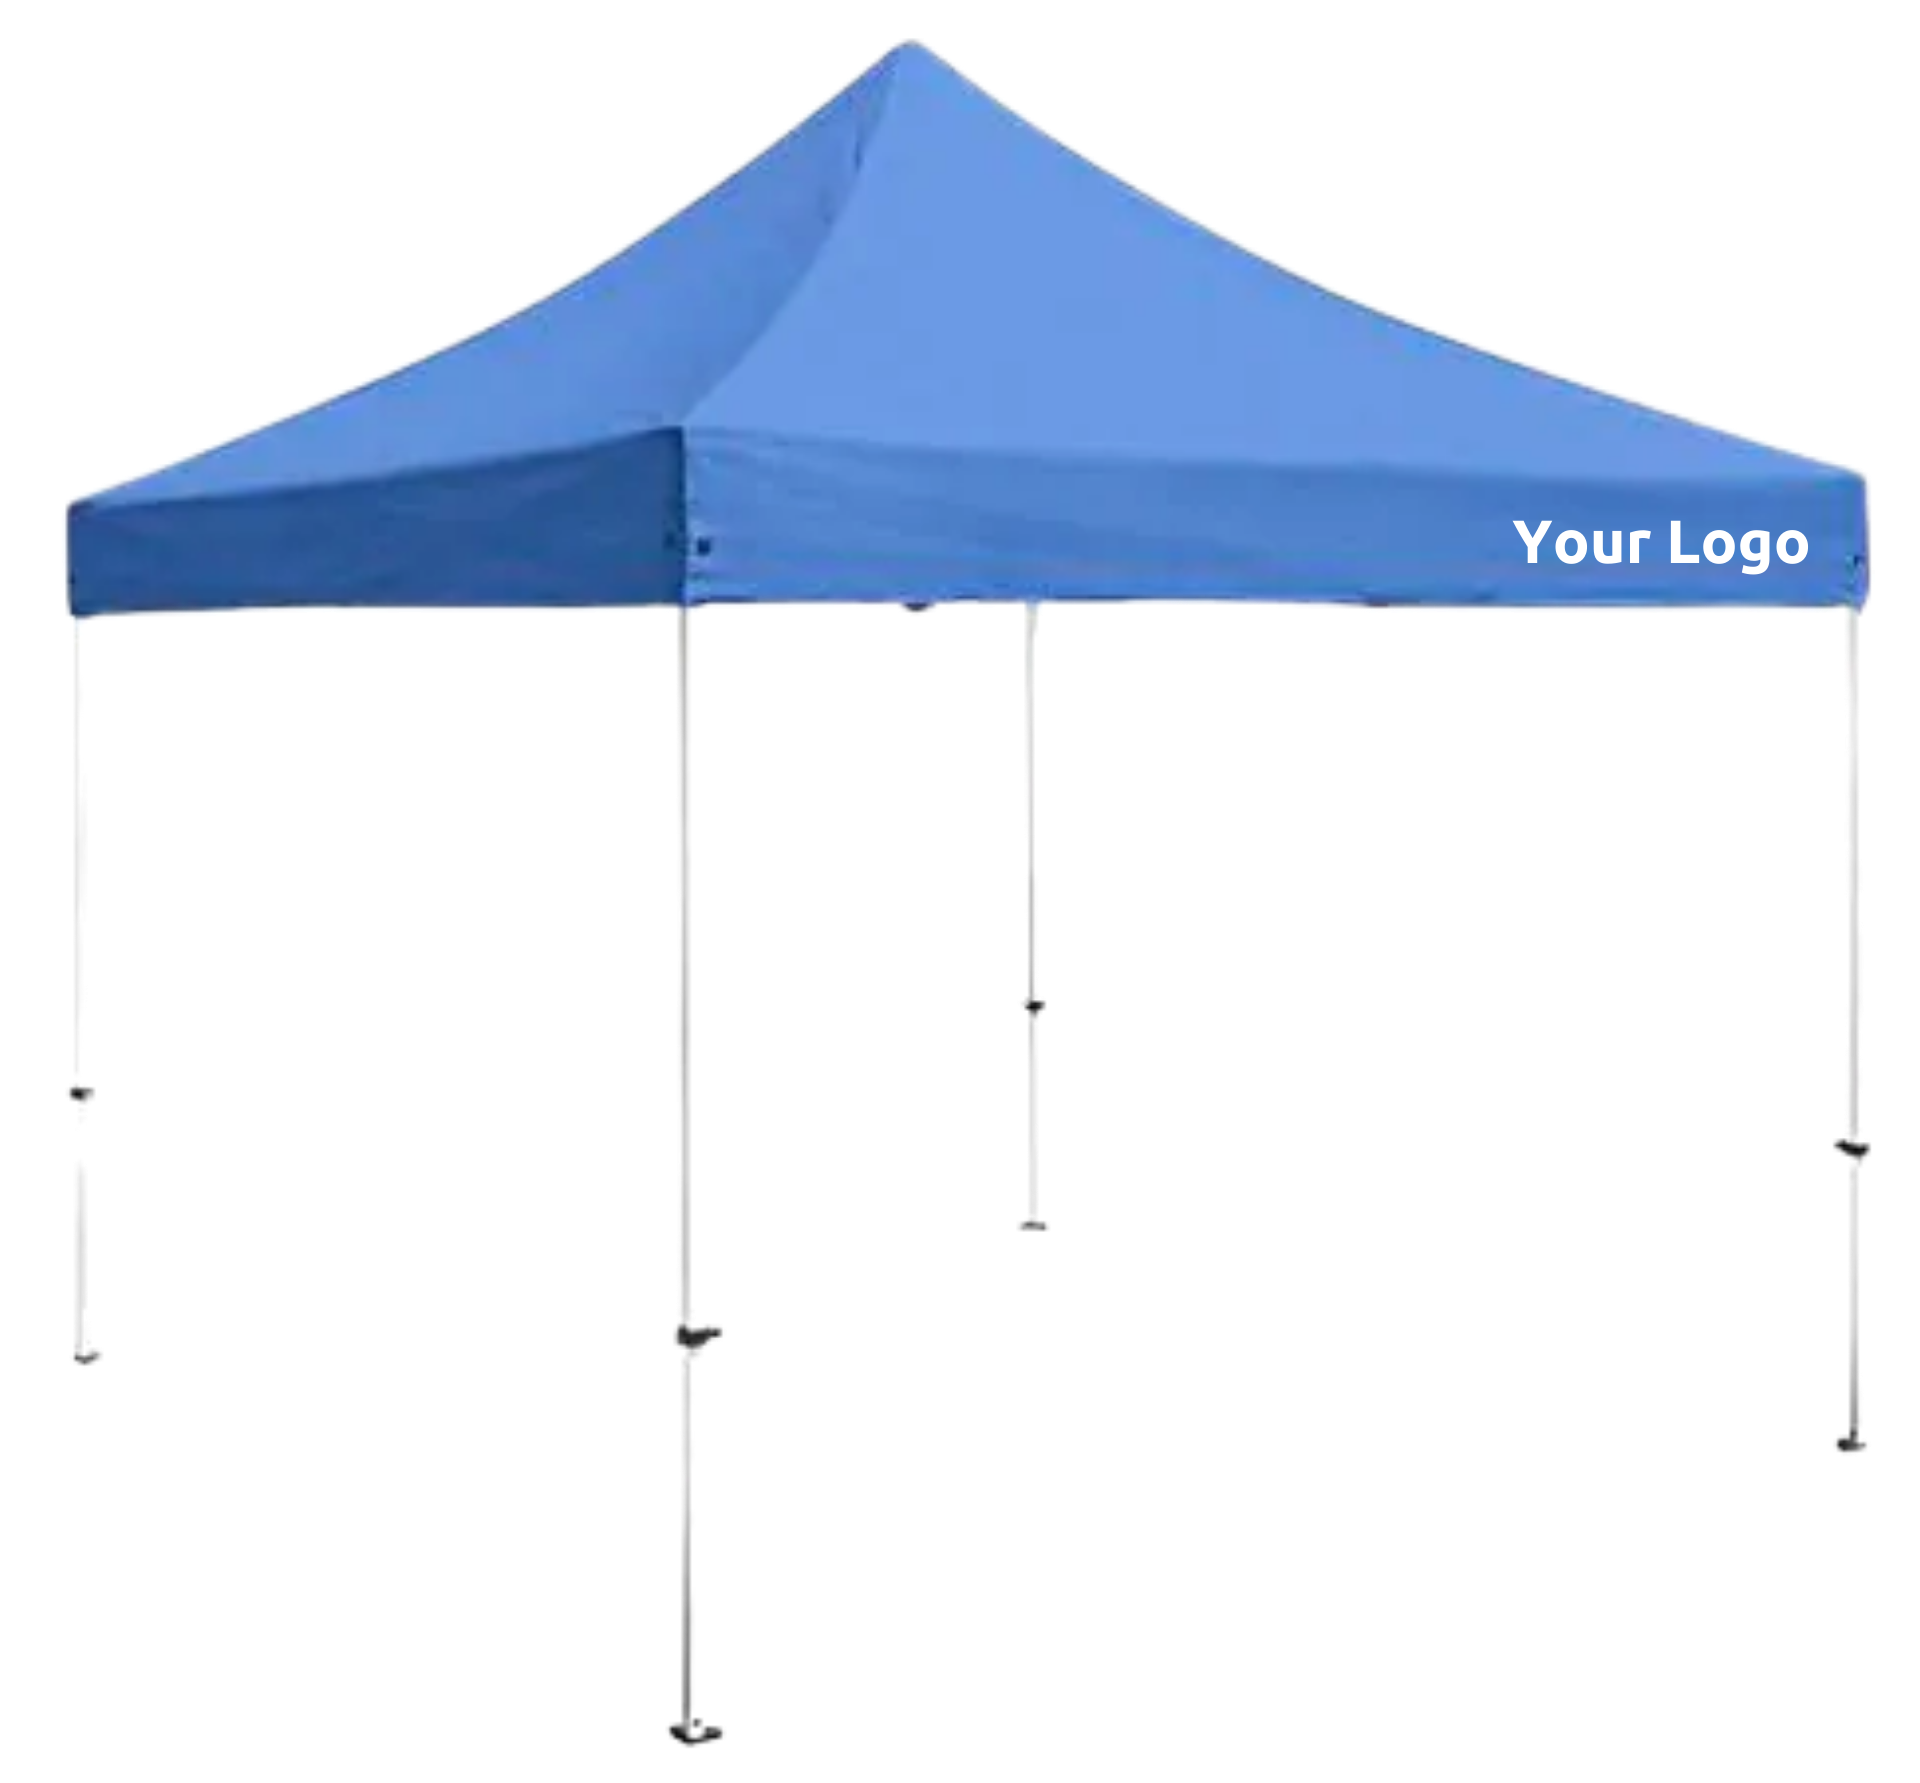 Plane Pull Fundraising Incentive Suite tent